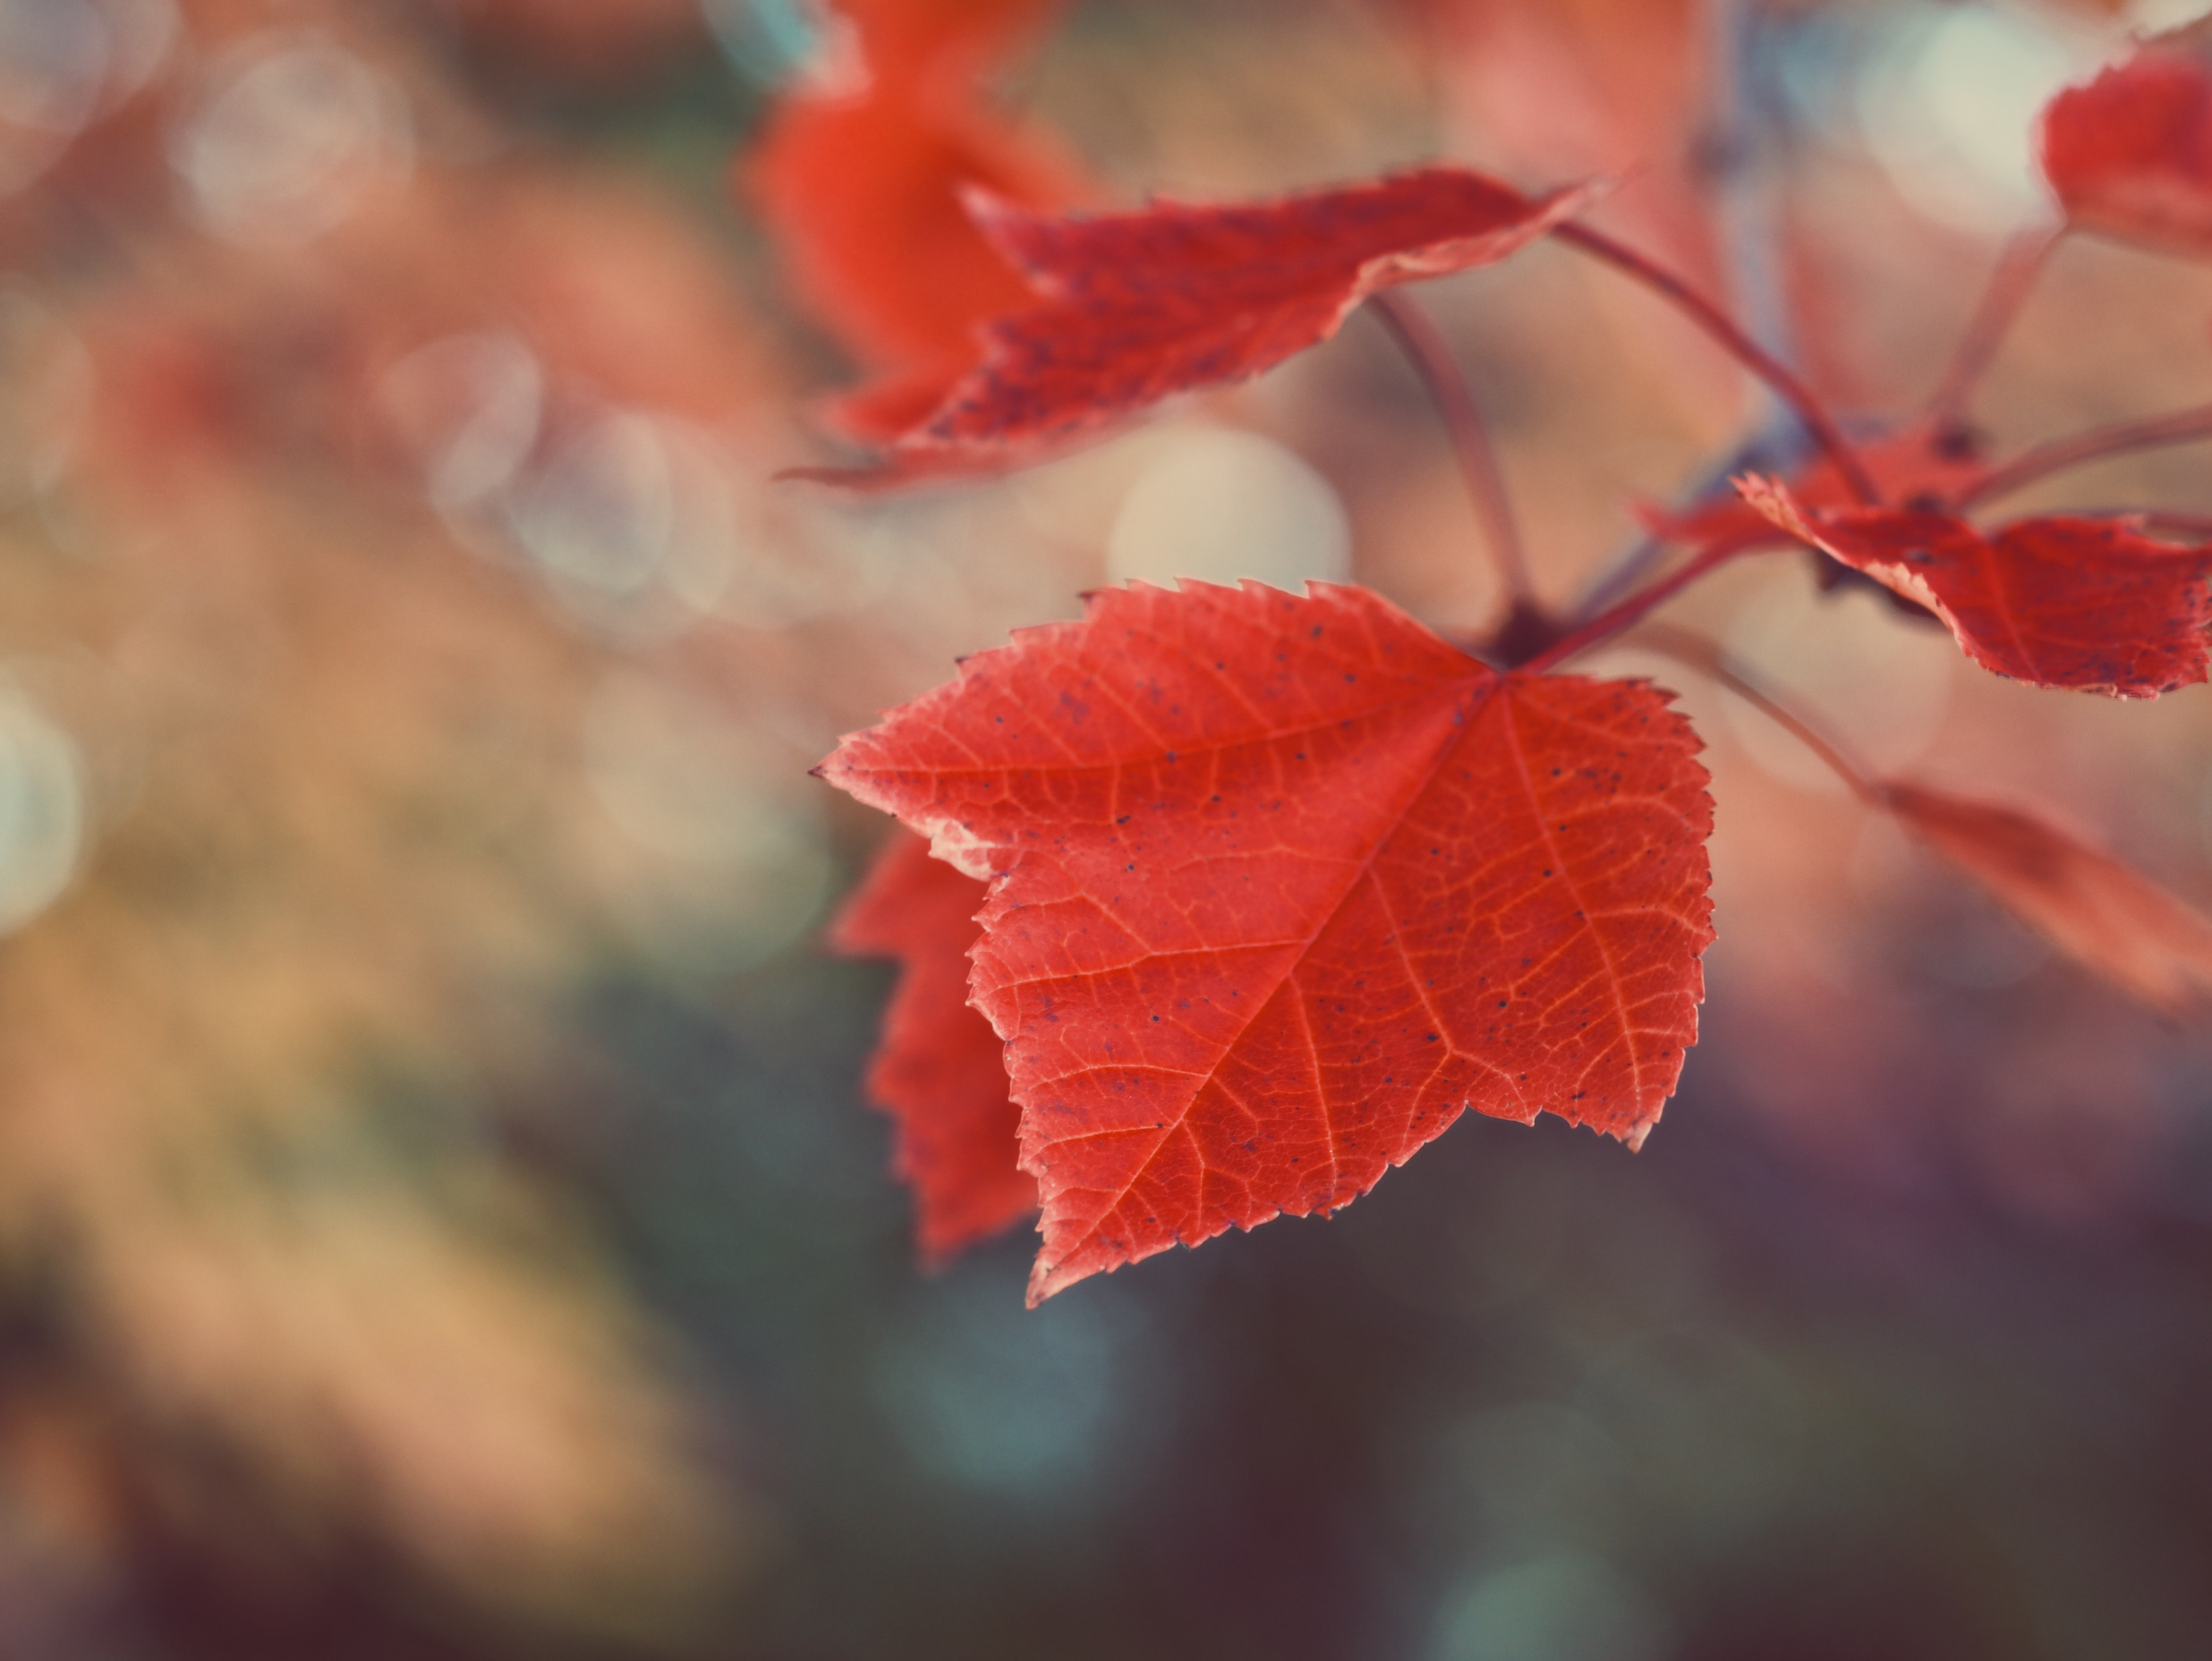 tilt shift photography of a red maple leaf